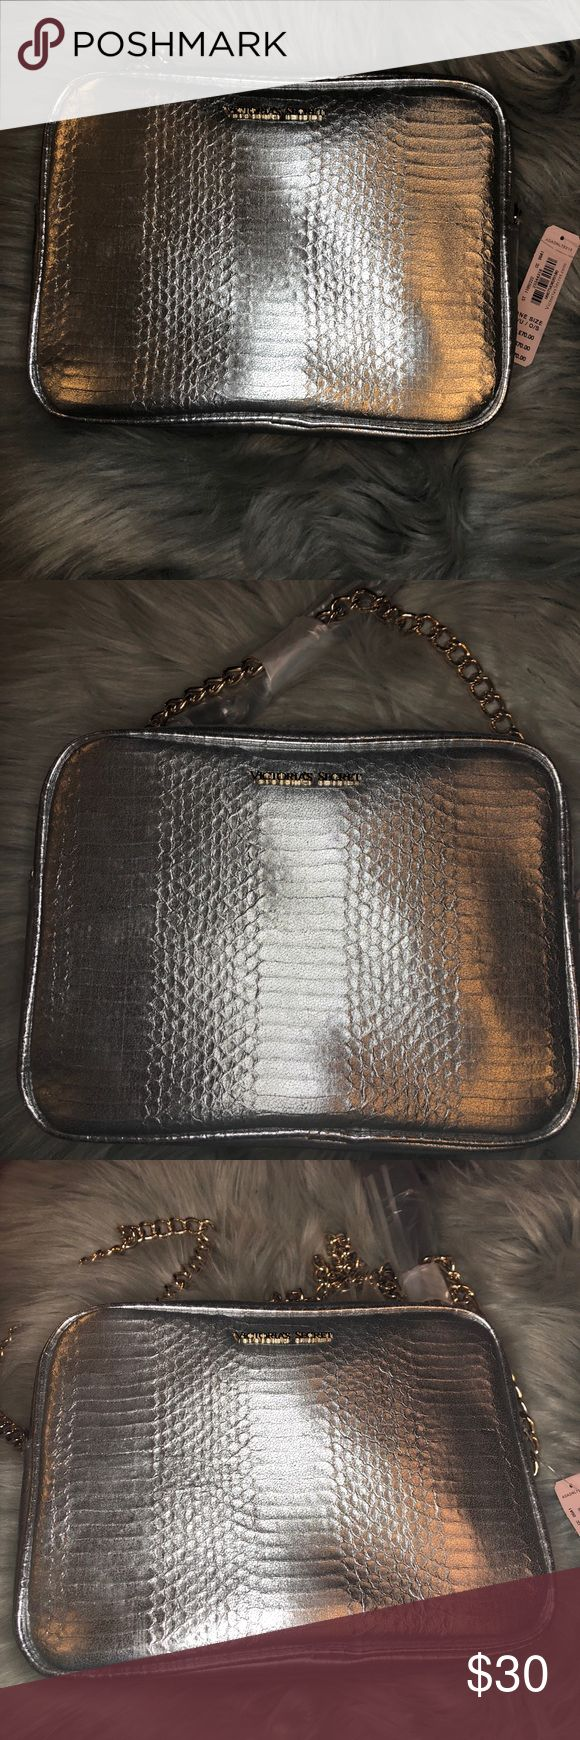 NWT Victoria's Secret silver shoulder bag Silver cross body Victoria's Secret bag is ready to party just as much as you! The faux reptile silver skin with a chain strap and tassel zipper is exactly what you need for your next out...or your friend's. Price is negotiable so make me an offer. Victoria's Secret Bags Crossbody Bags